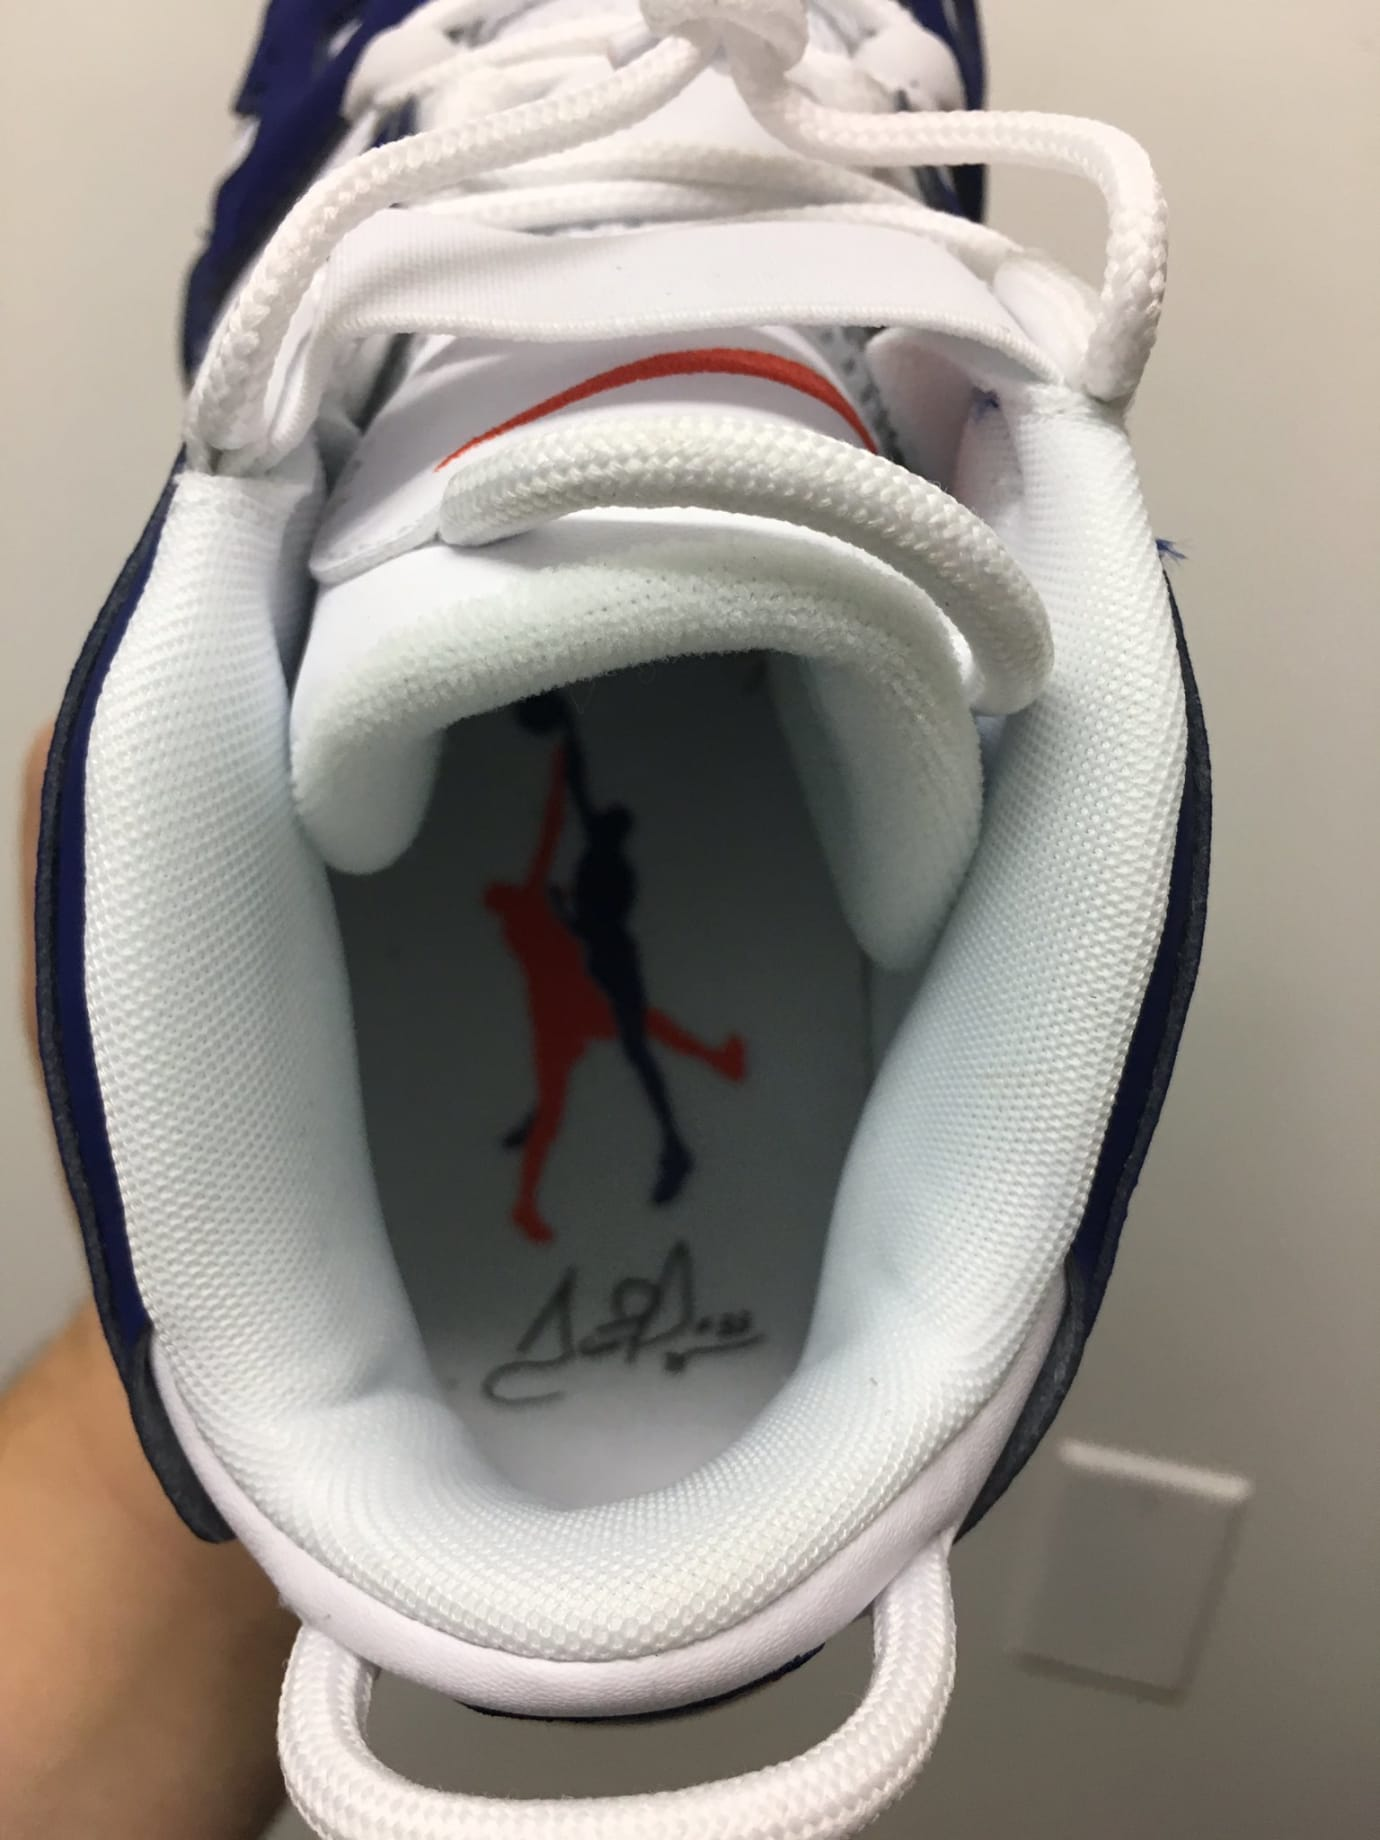 Nike Air More Uptempo Knicks Ewing Release Date Insole 921948-101